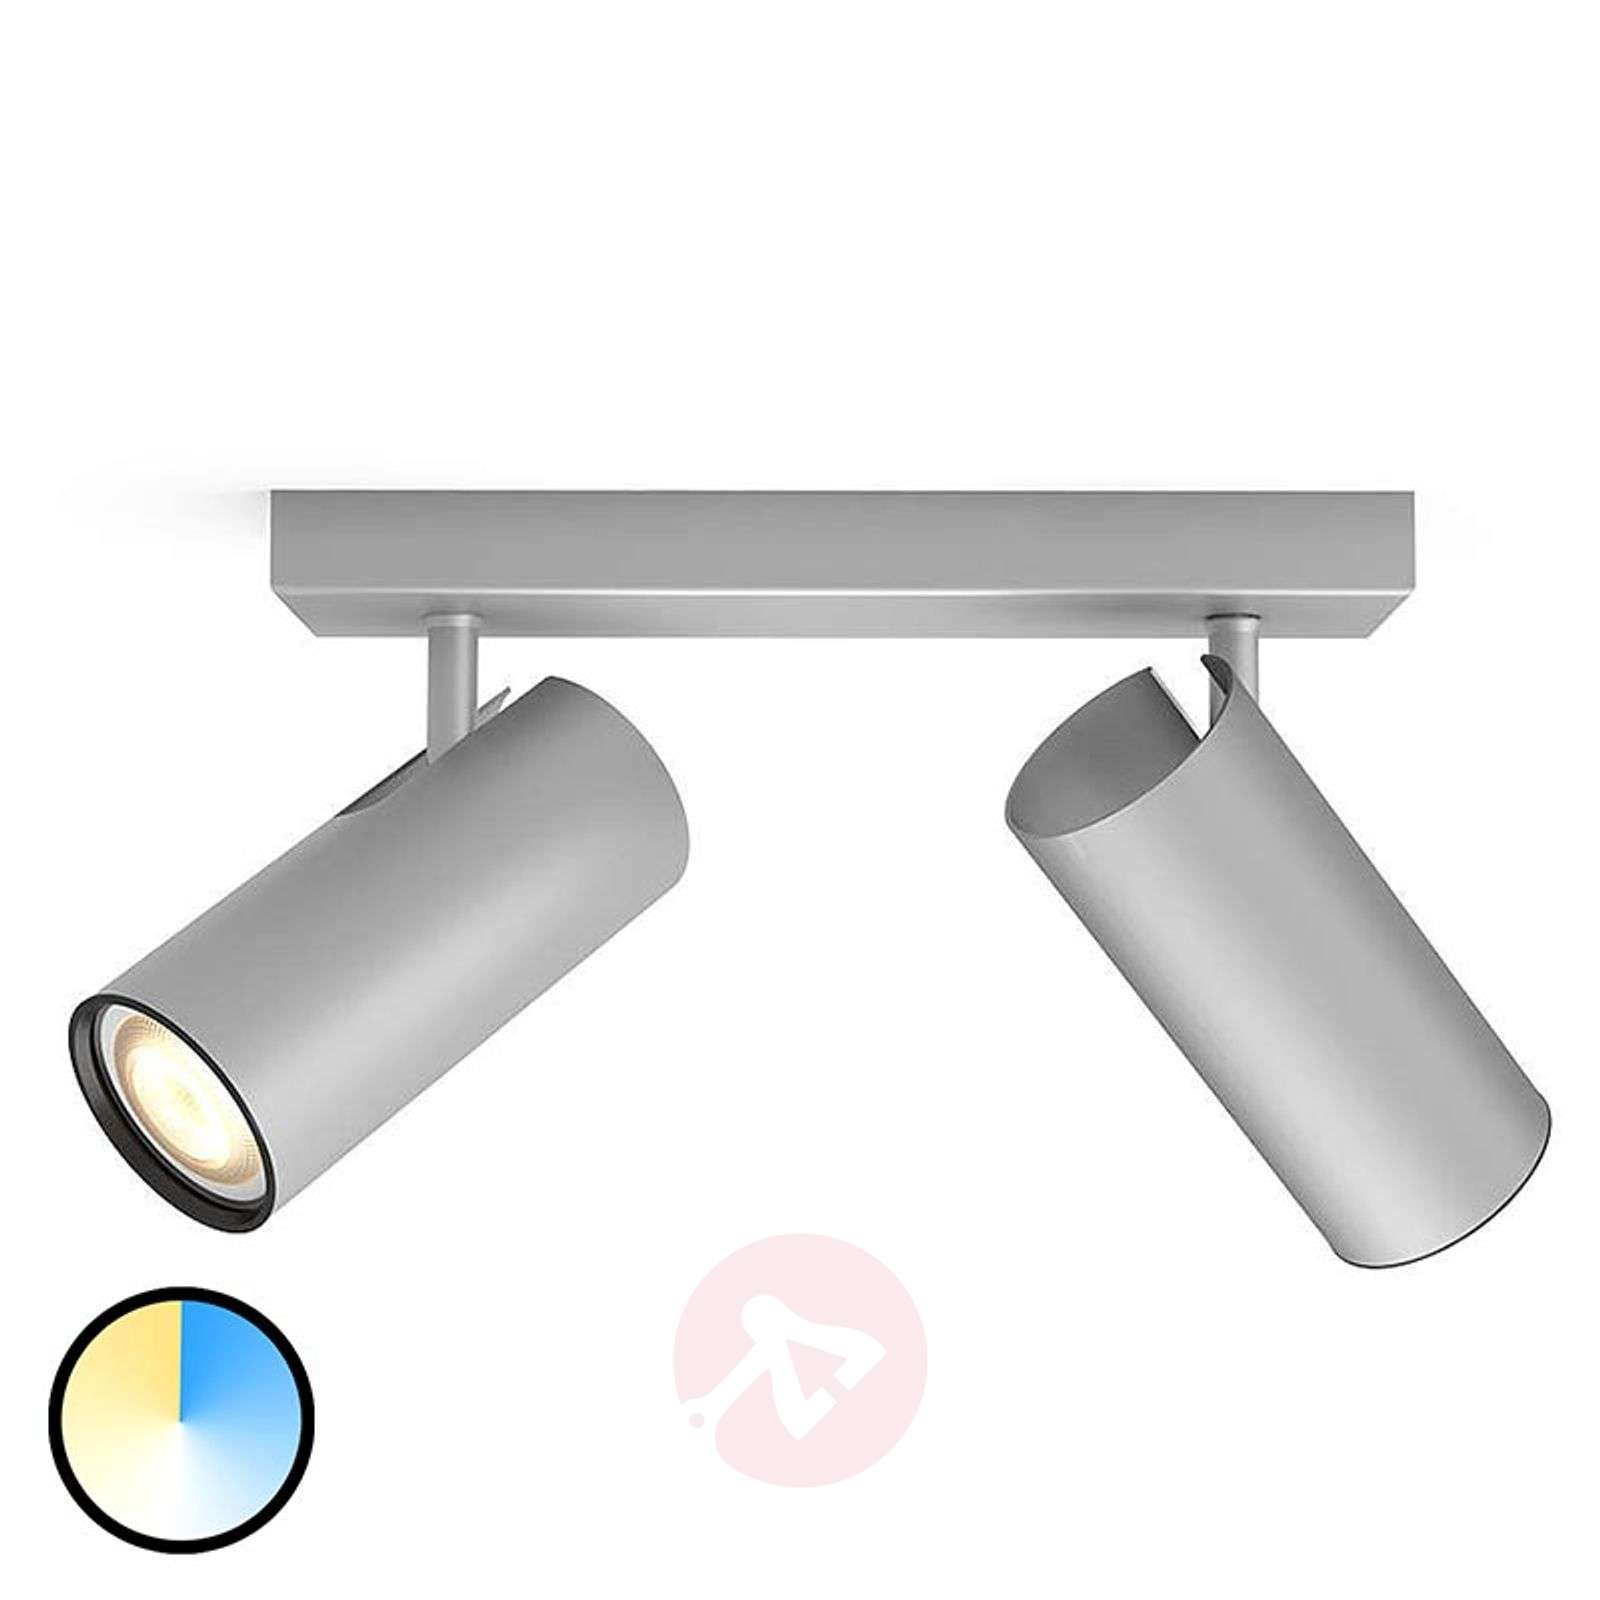 Philips Hue Buratto LED-spot alu 2-lamps dimmer-7532043-01